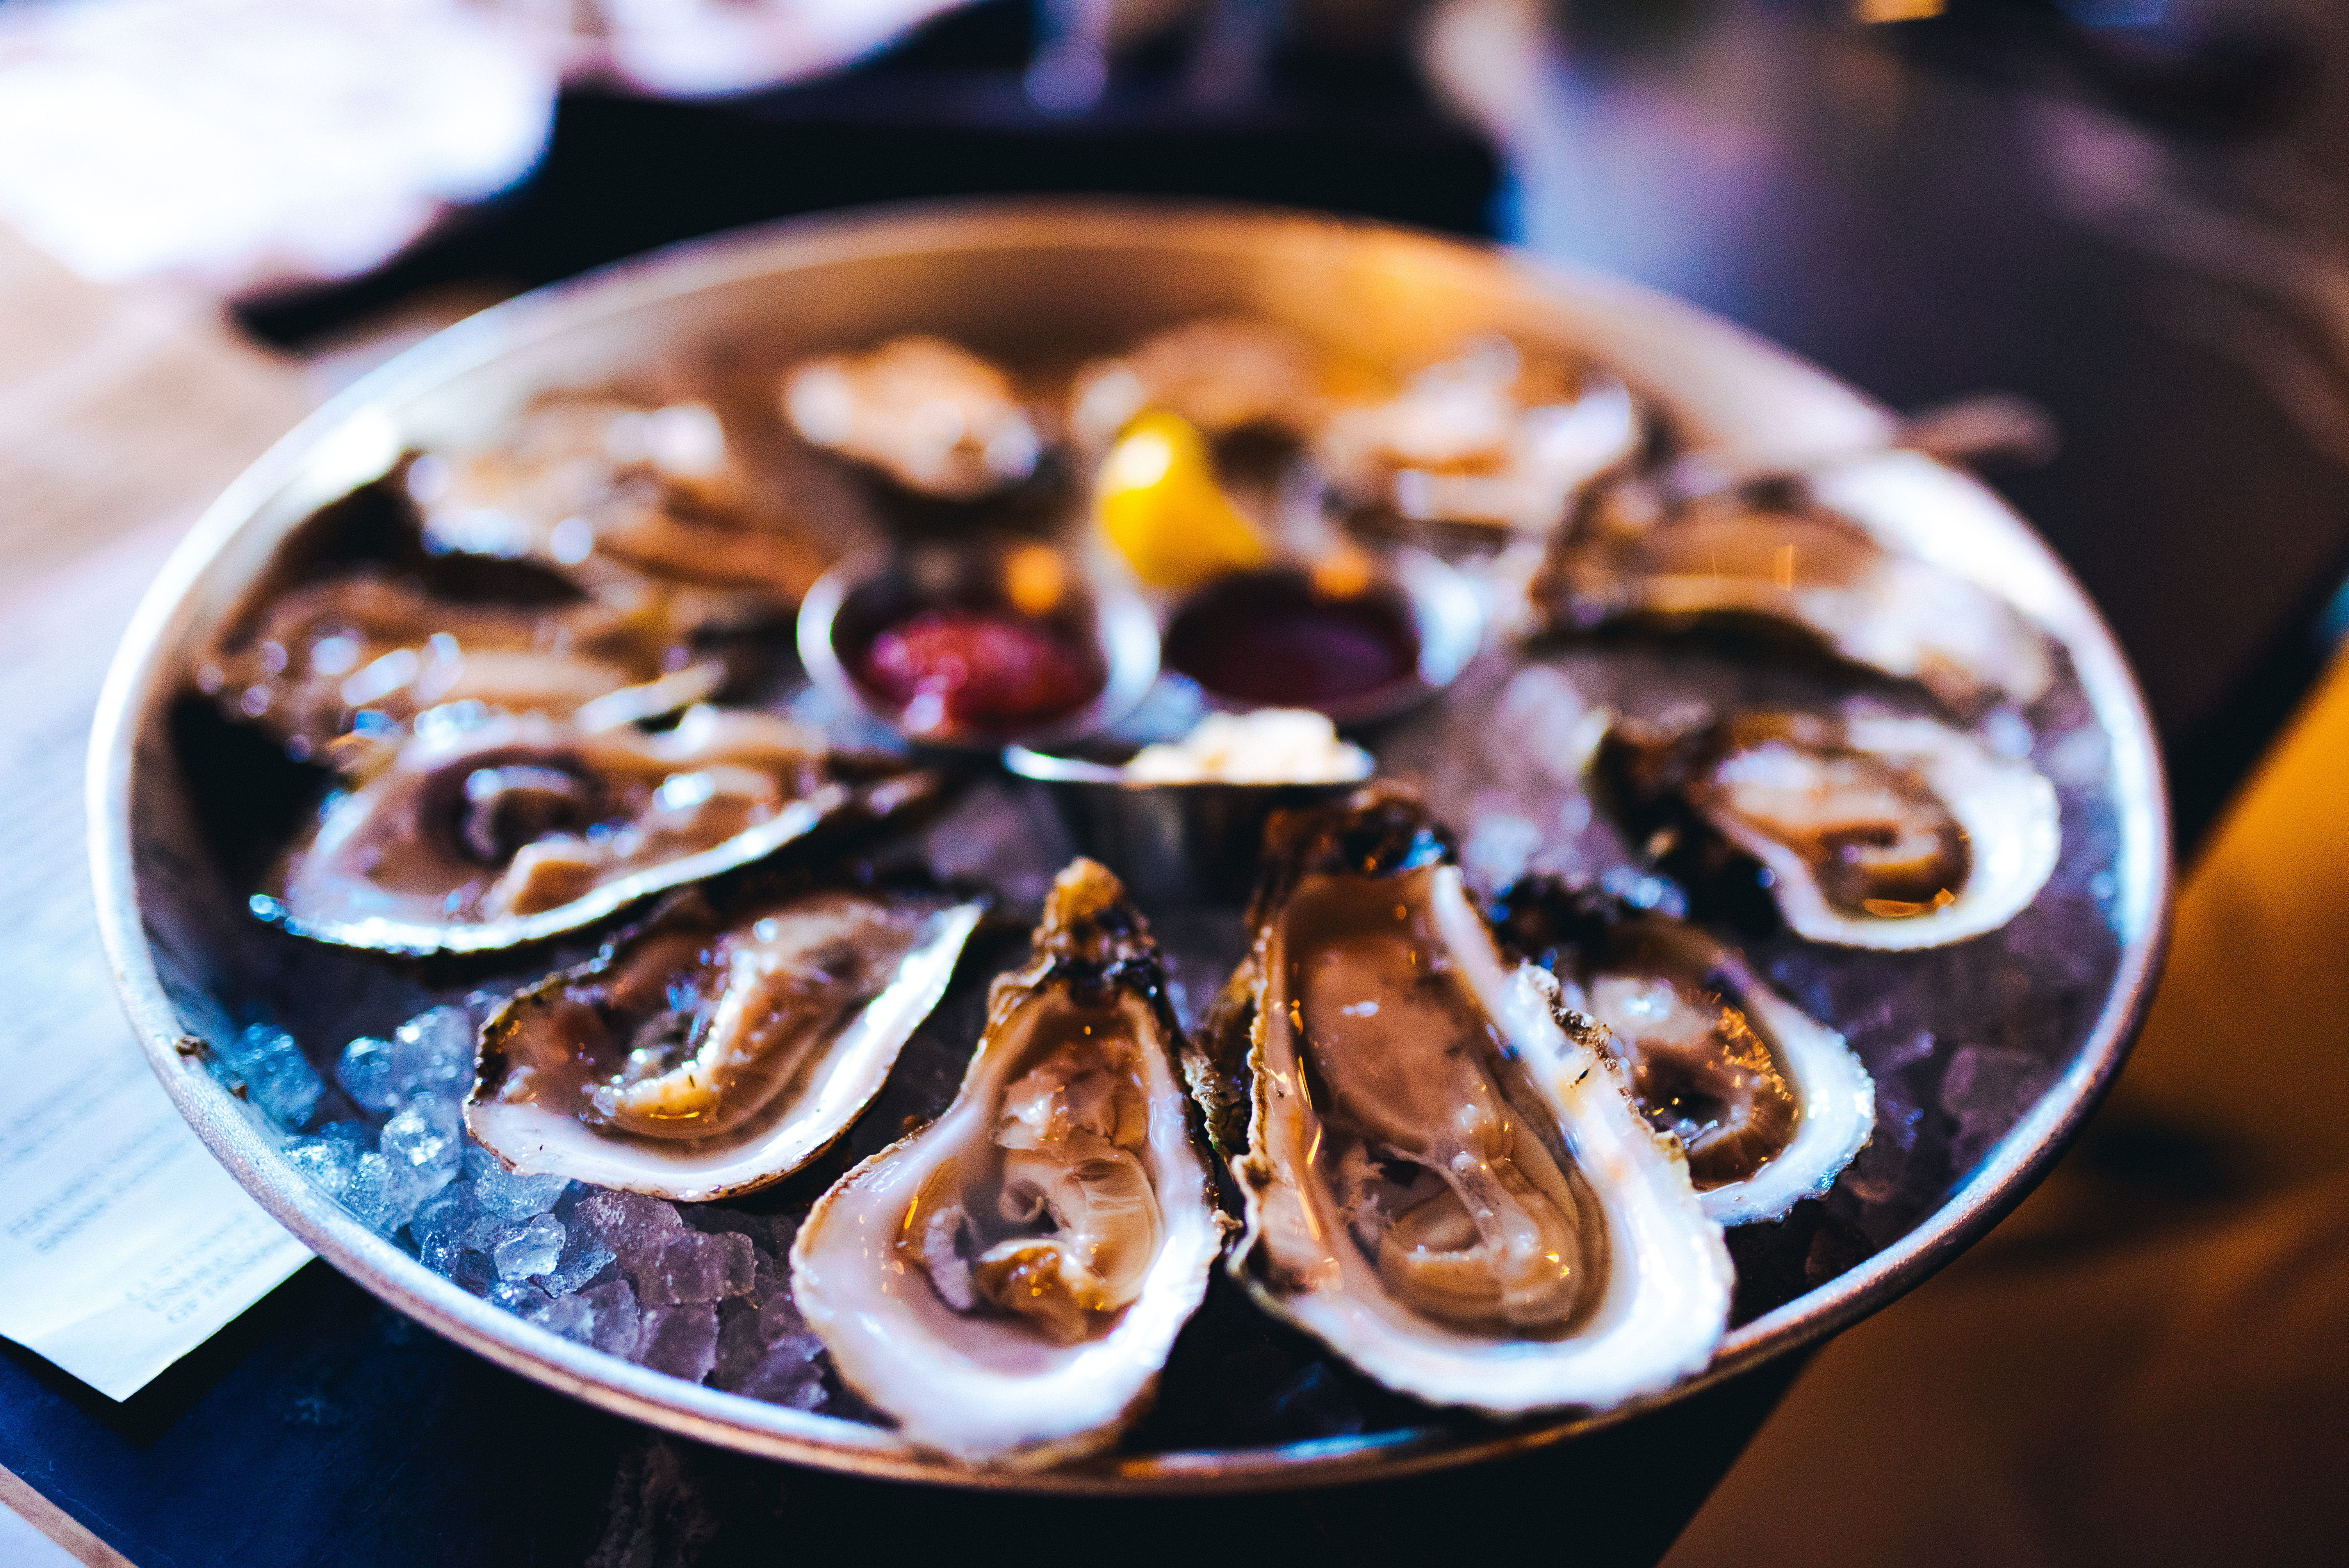 Chattanooga Restaurants - Where to eat in Chattanooga